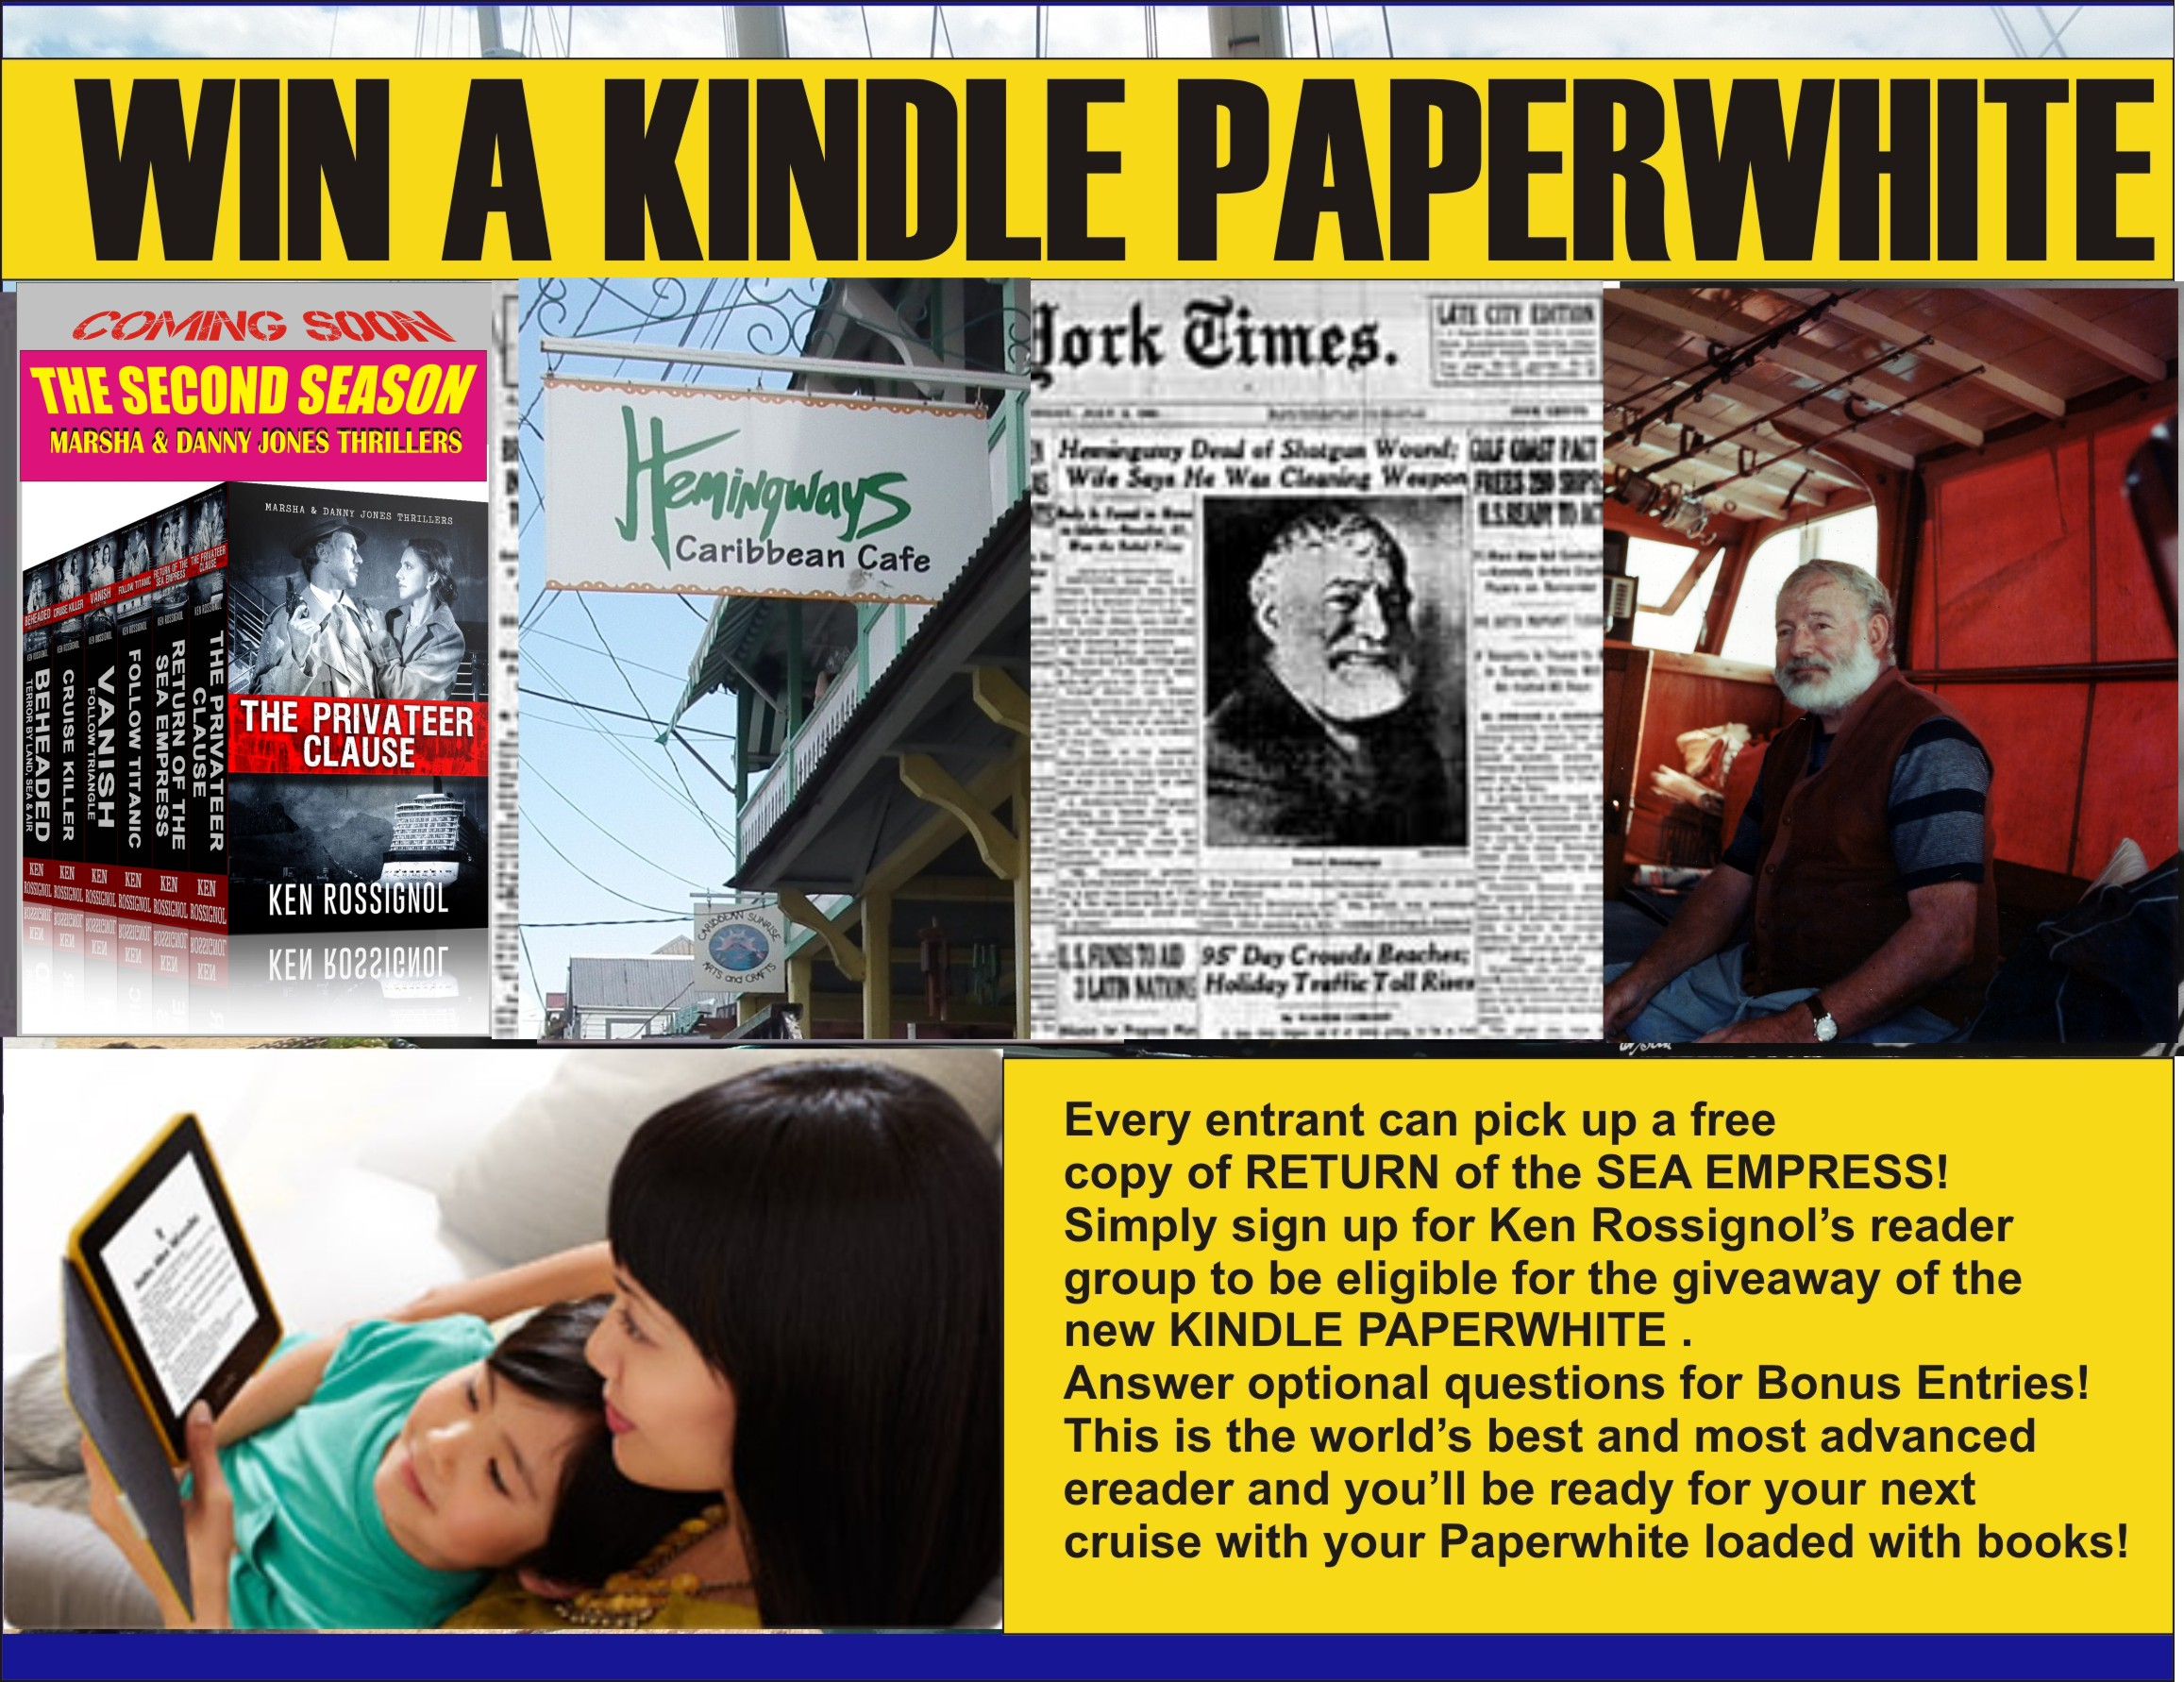 Ernest Hemingway was at home in Idaho with his 4th wife when he died on July 2, 1961; Enter to win a Paperwhite for his birthday